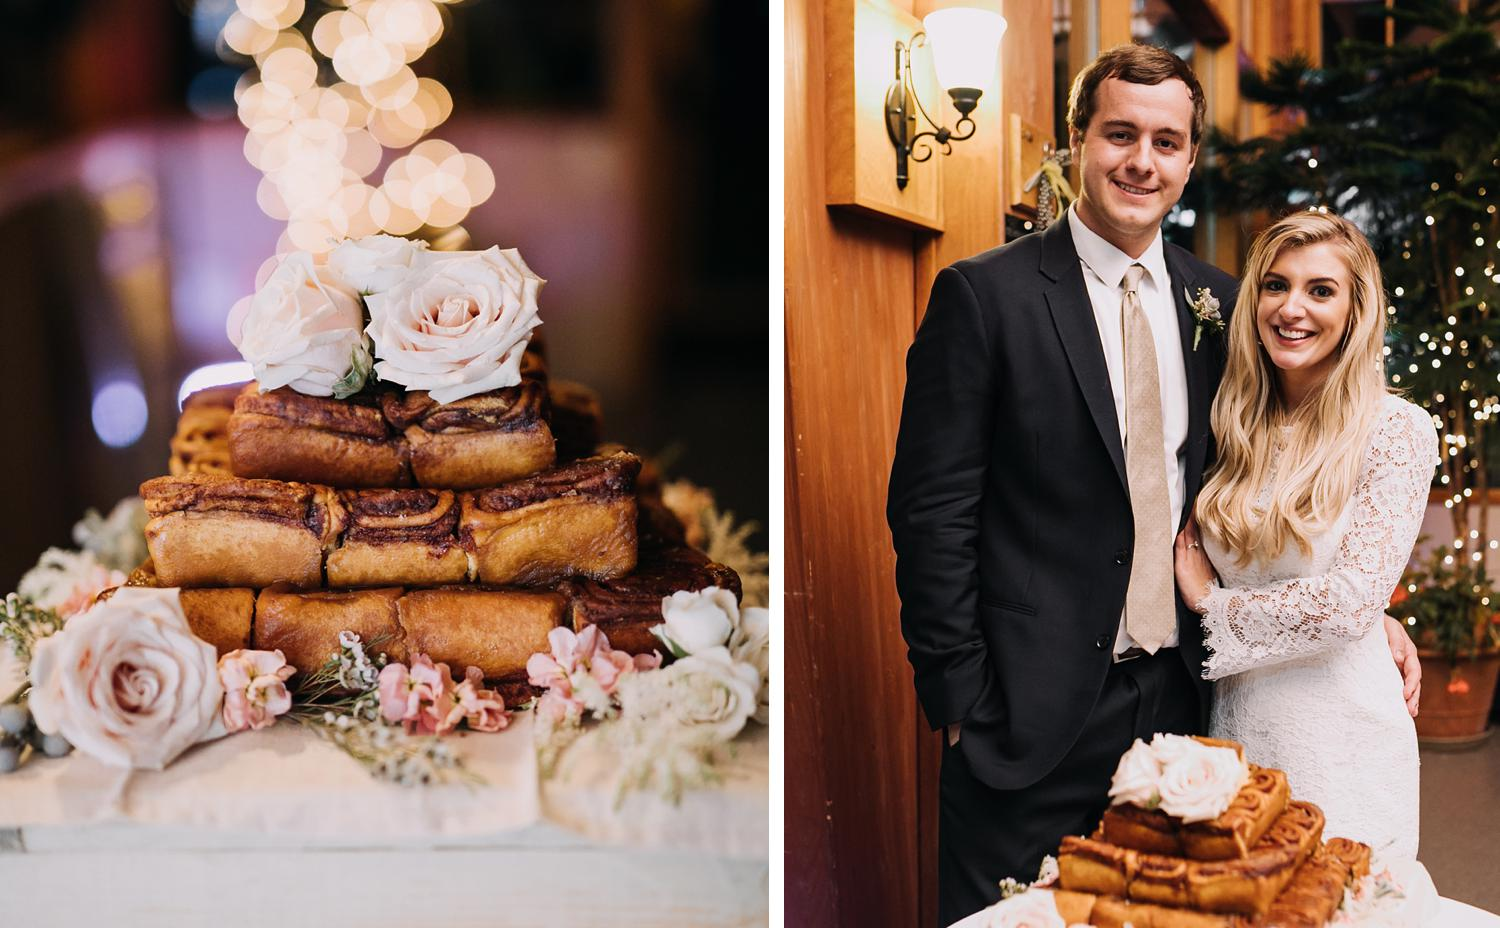 Conservatory Sussex County Fairgrounds Augusta NJ Wedding Photography Steph Massaro Cake Cutting